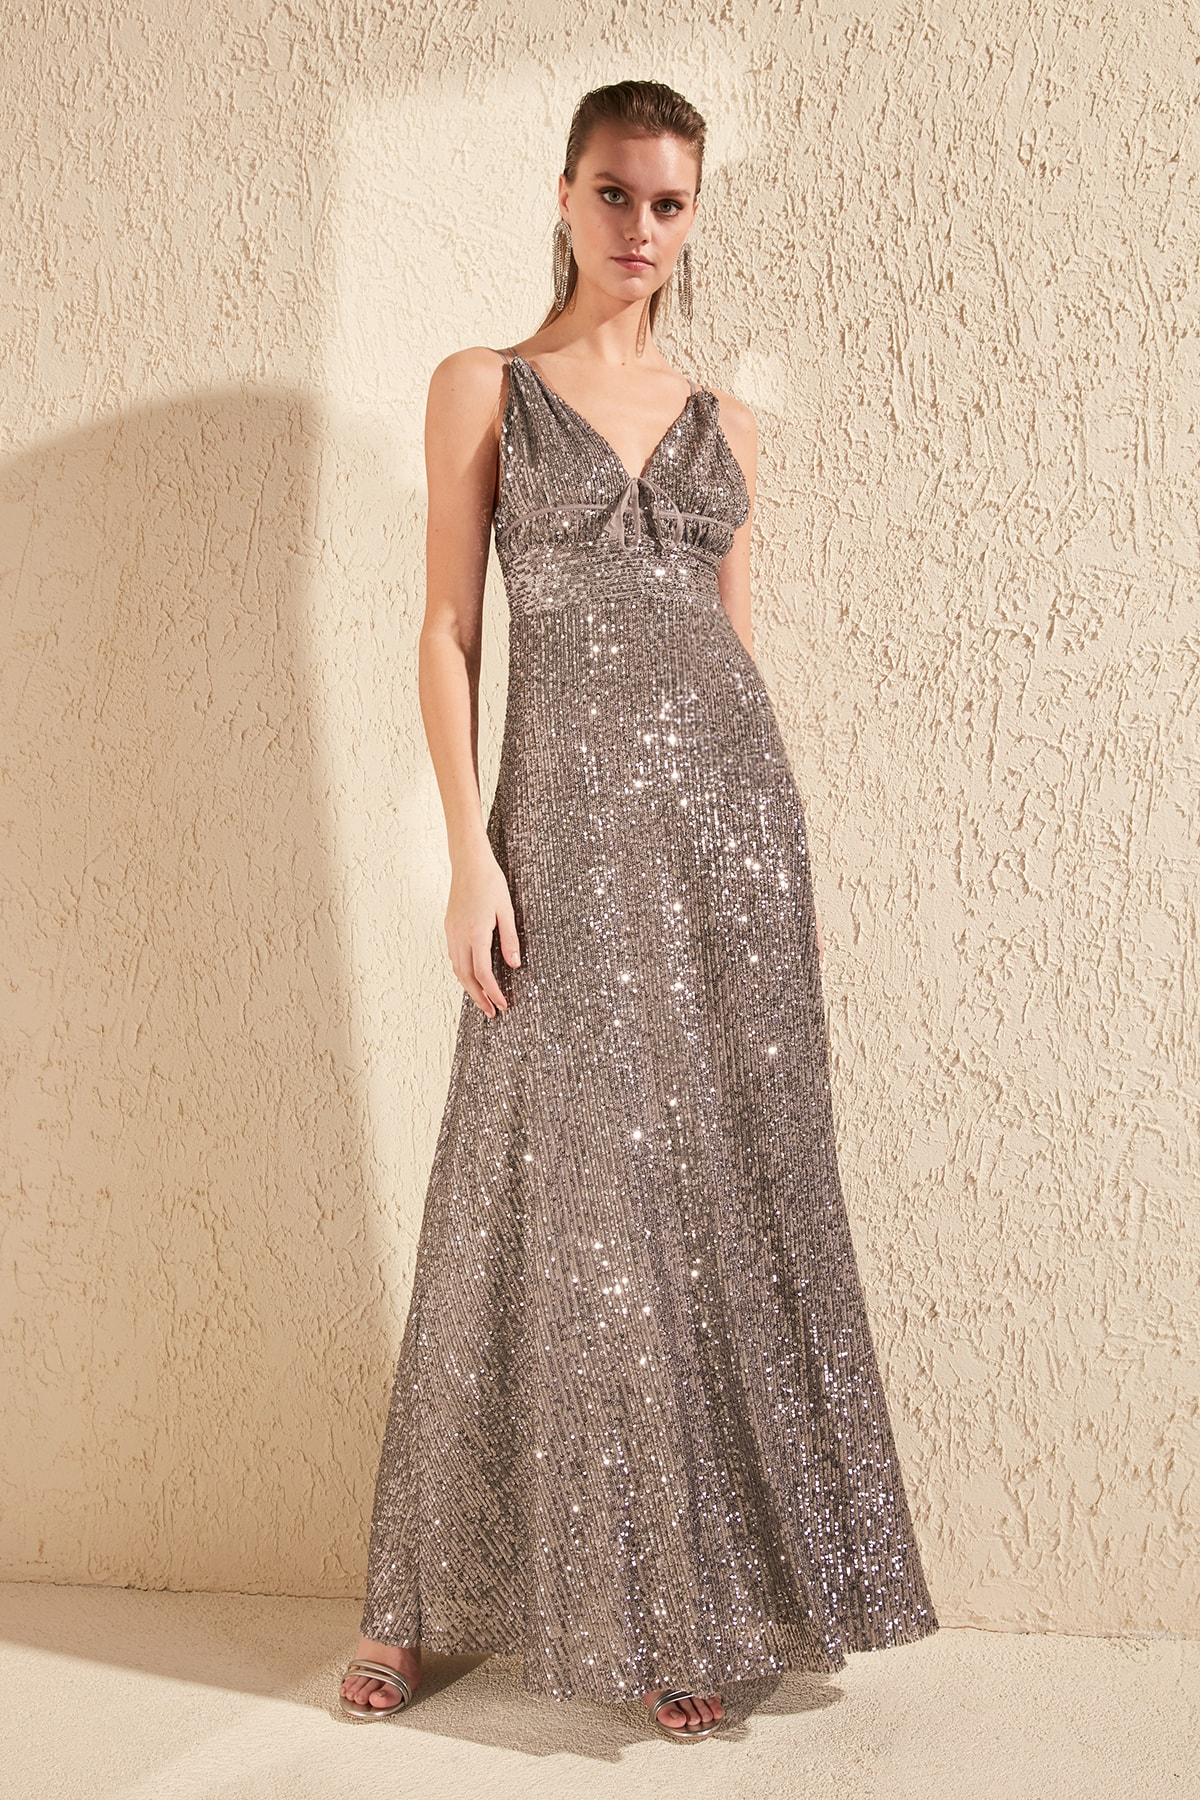 Trendyol Low-Cut Detailed Sequin Evening Dresses & Prom Gown TPRSS20AE0037